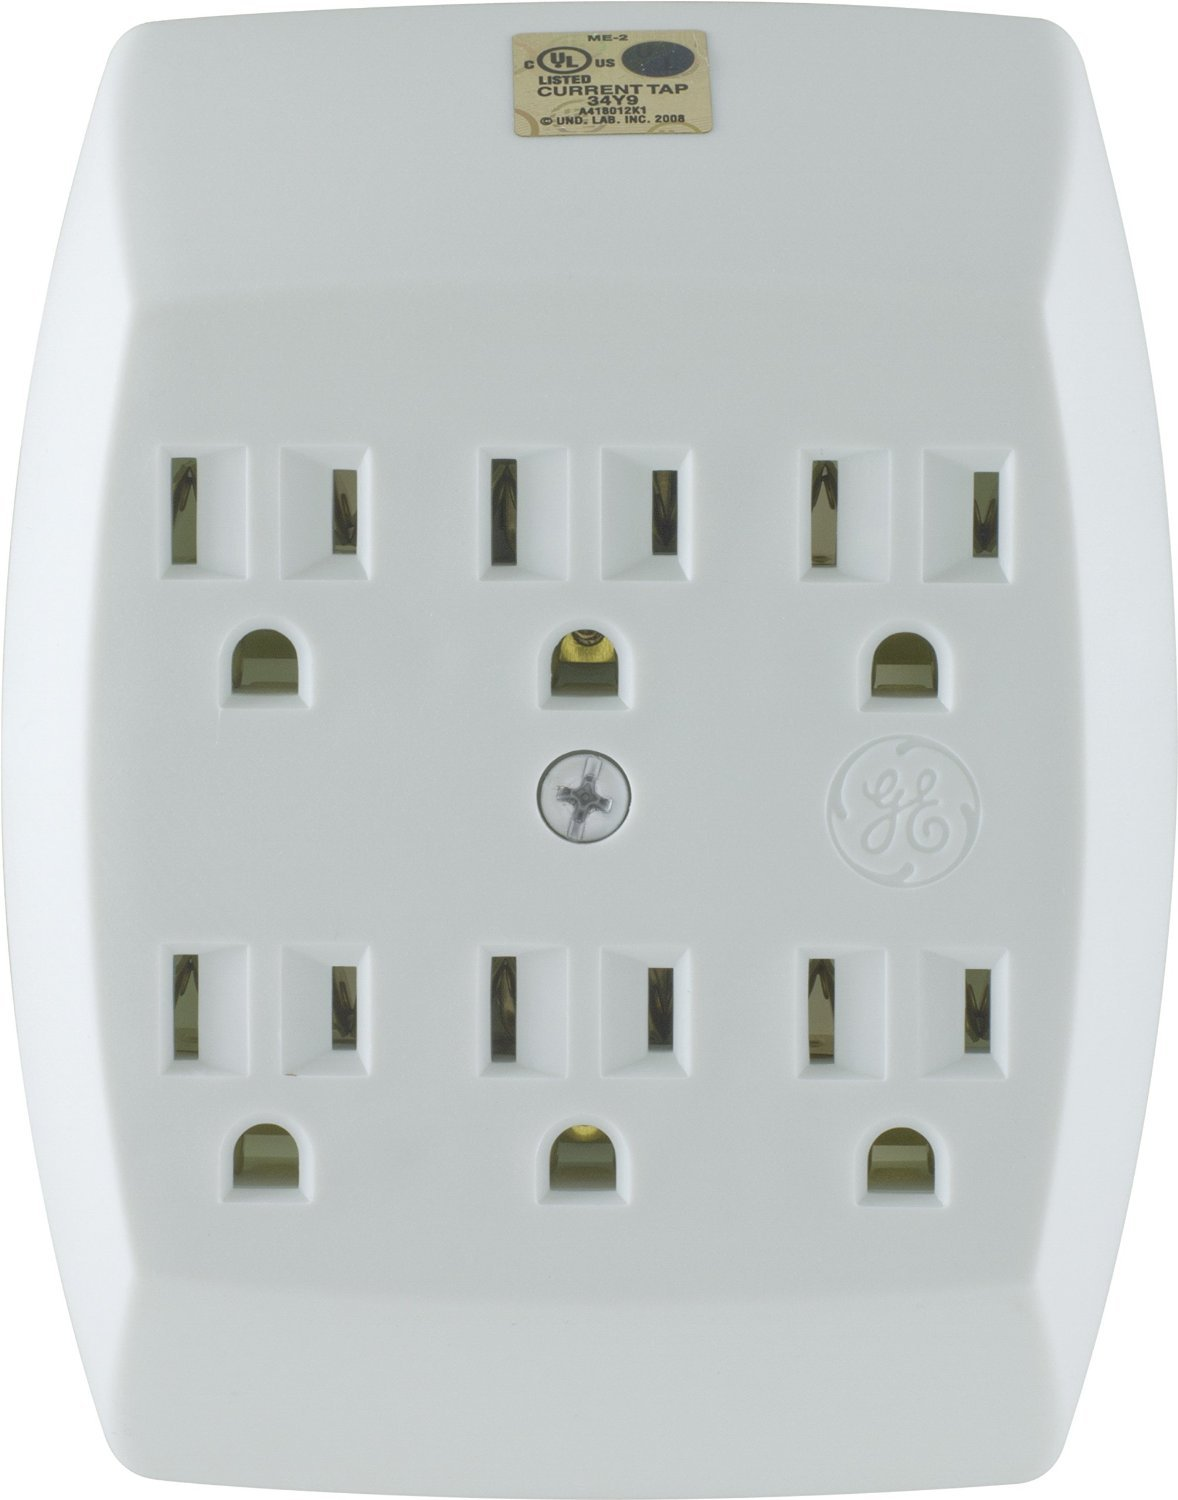 General Electric 54947 3 Pack 6-Outlet Grounded Tap, White